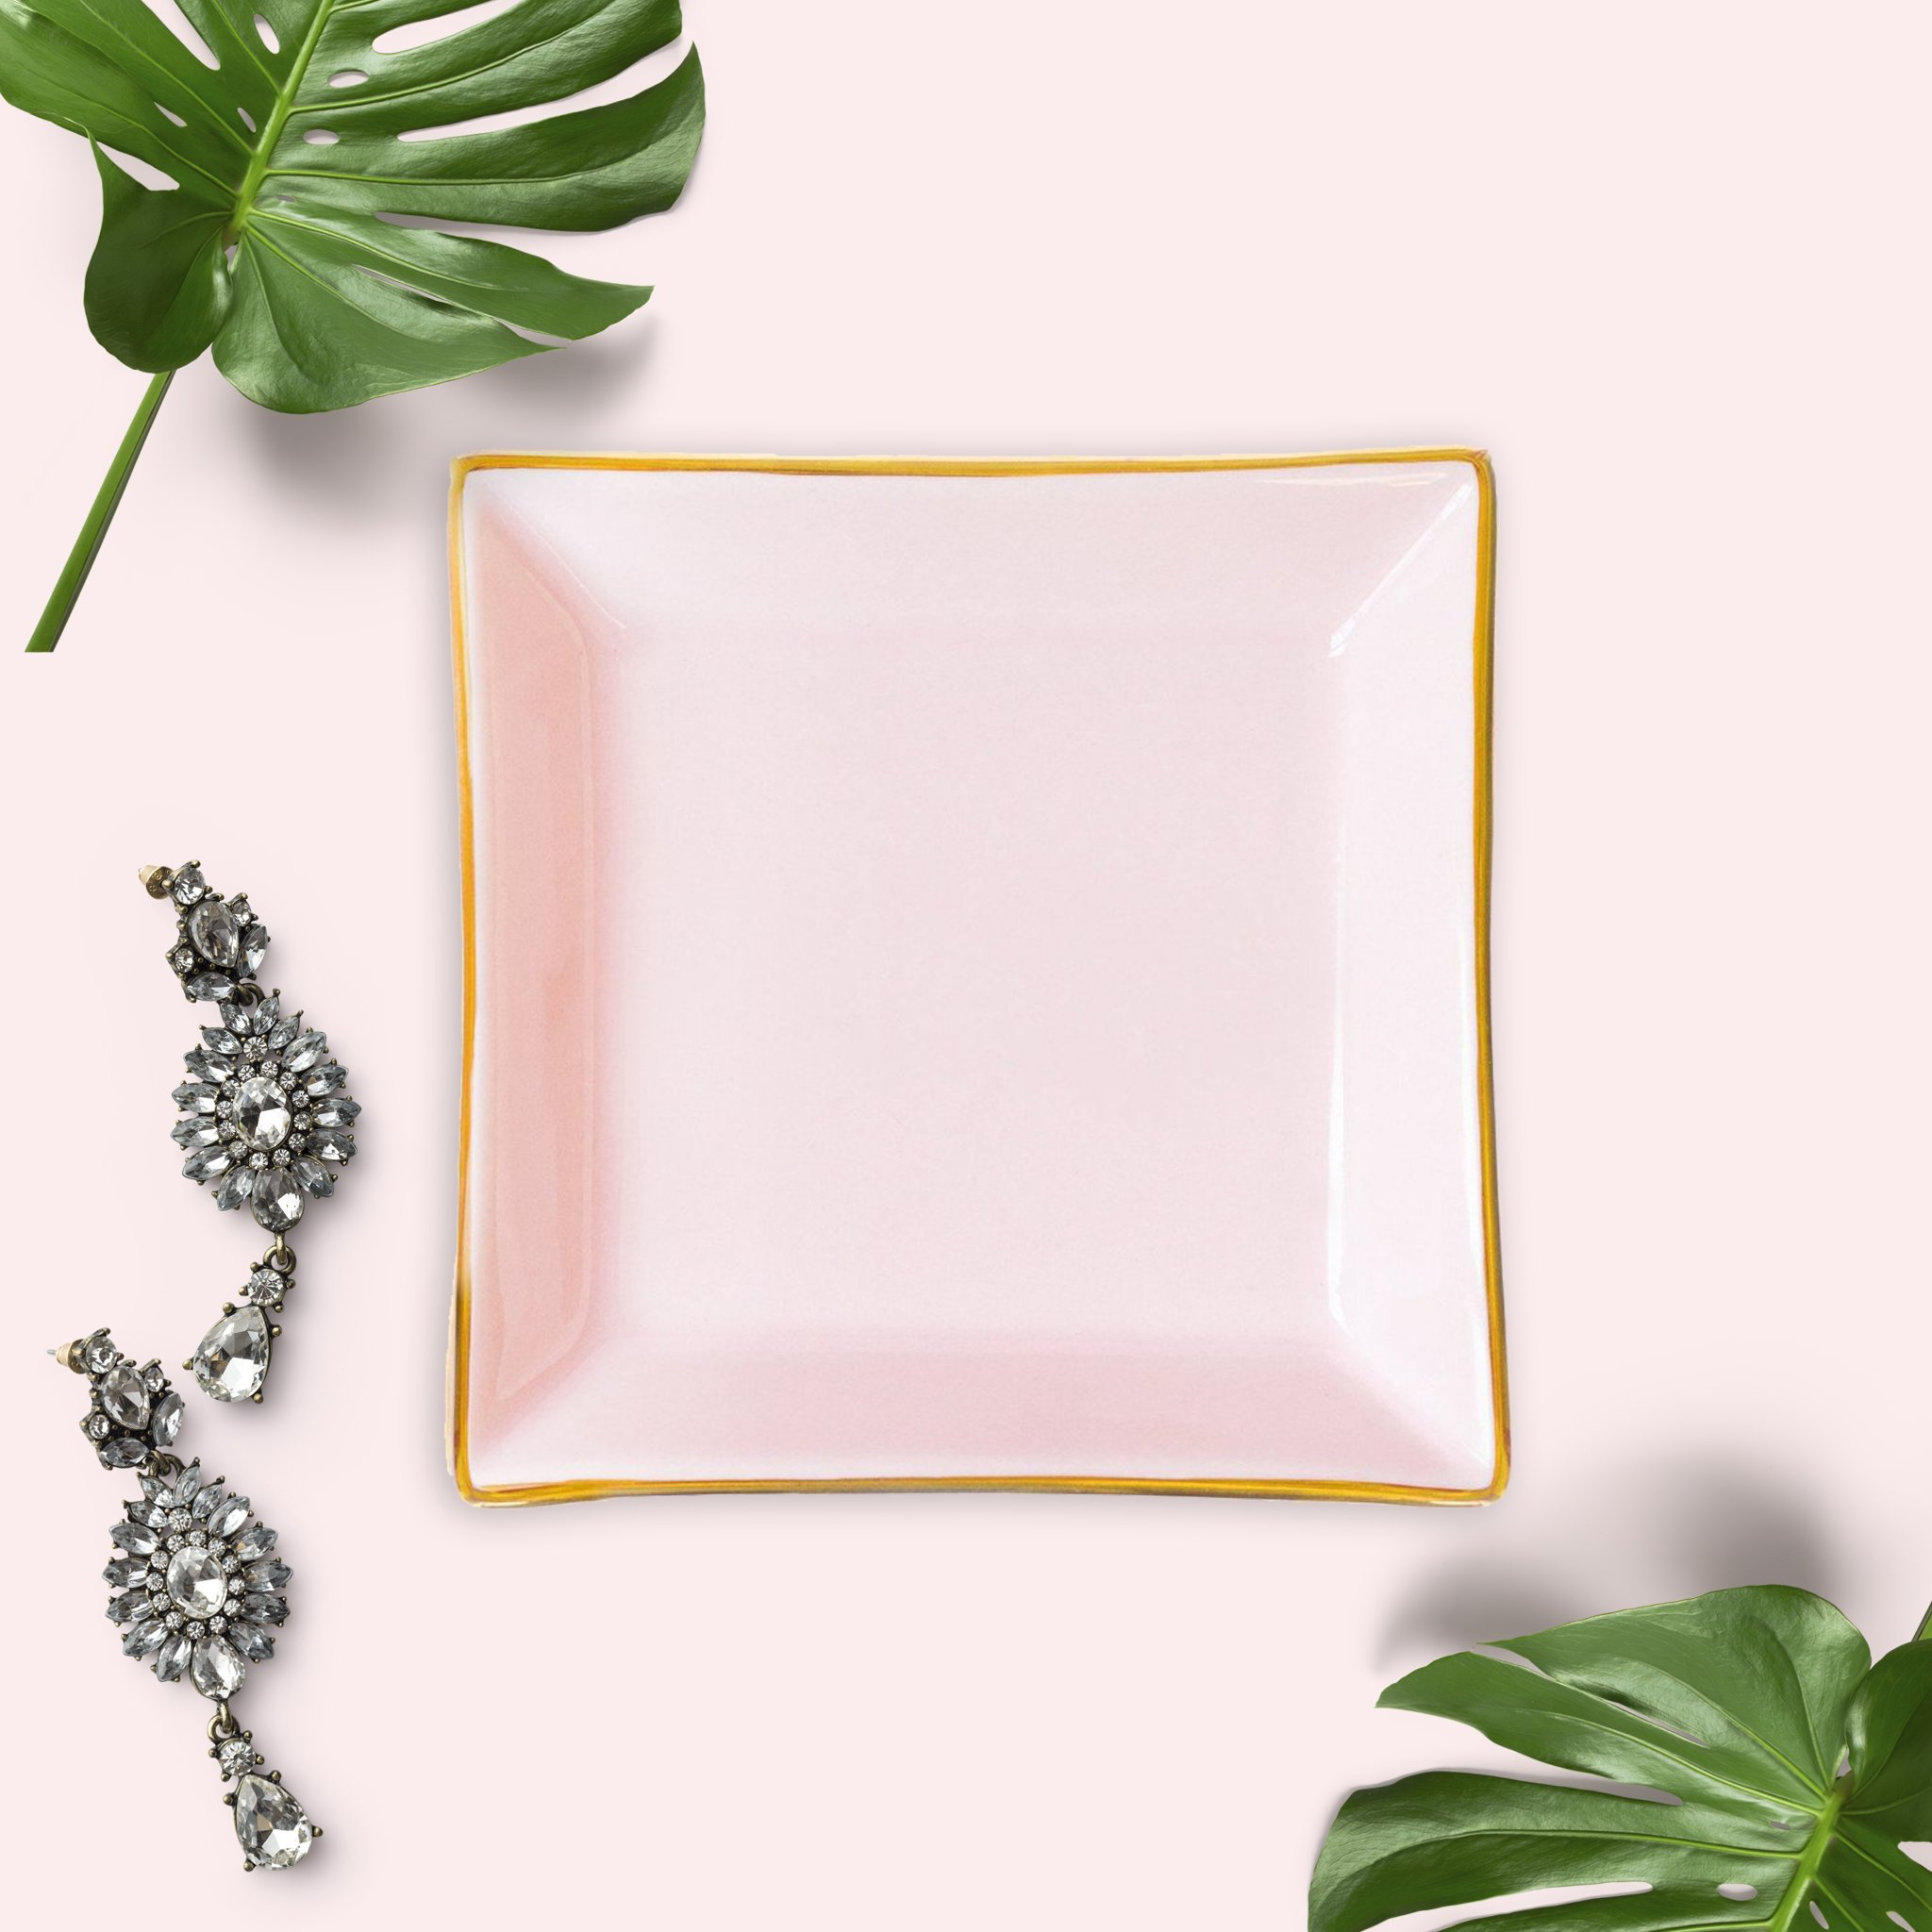 Pink Square Jewelry Dish | Small Ring Holder Ceramic Bridesmaid Tray Wedding Gift for Bride Office Decor